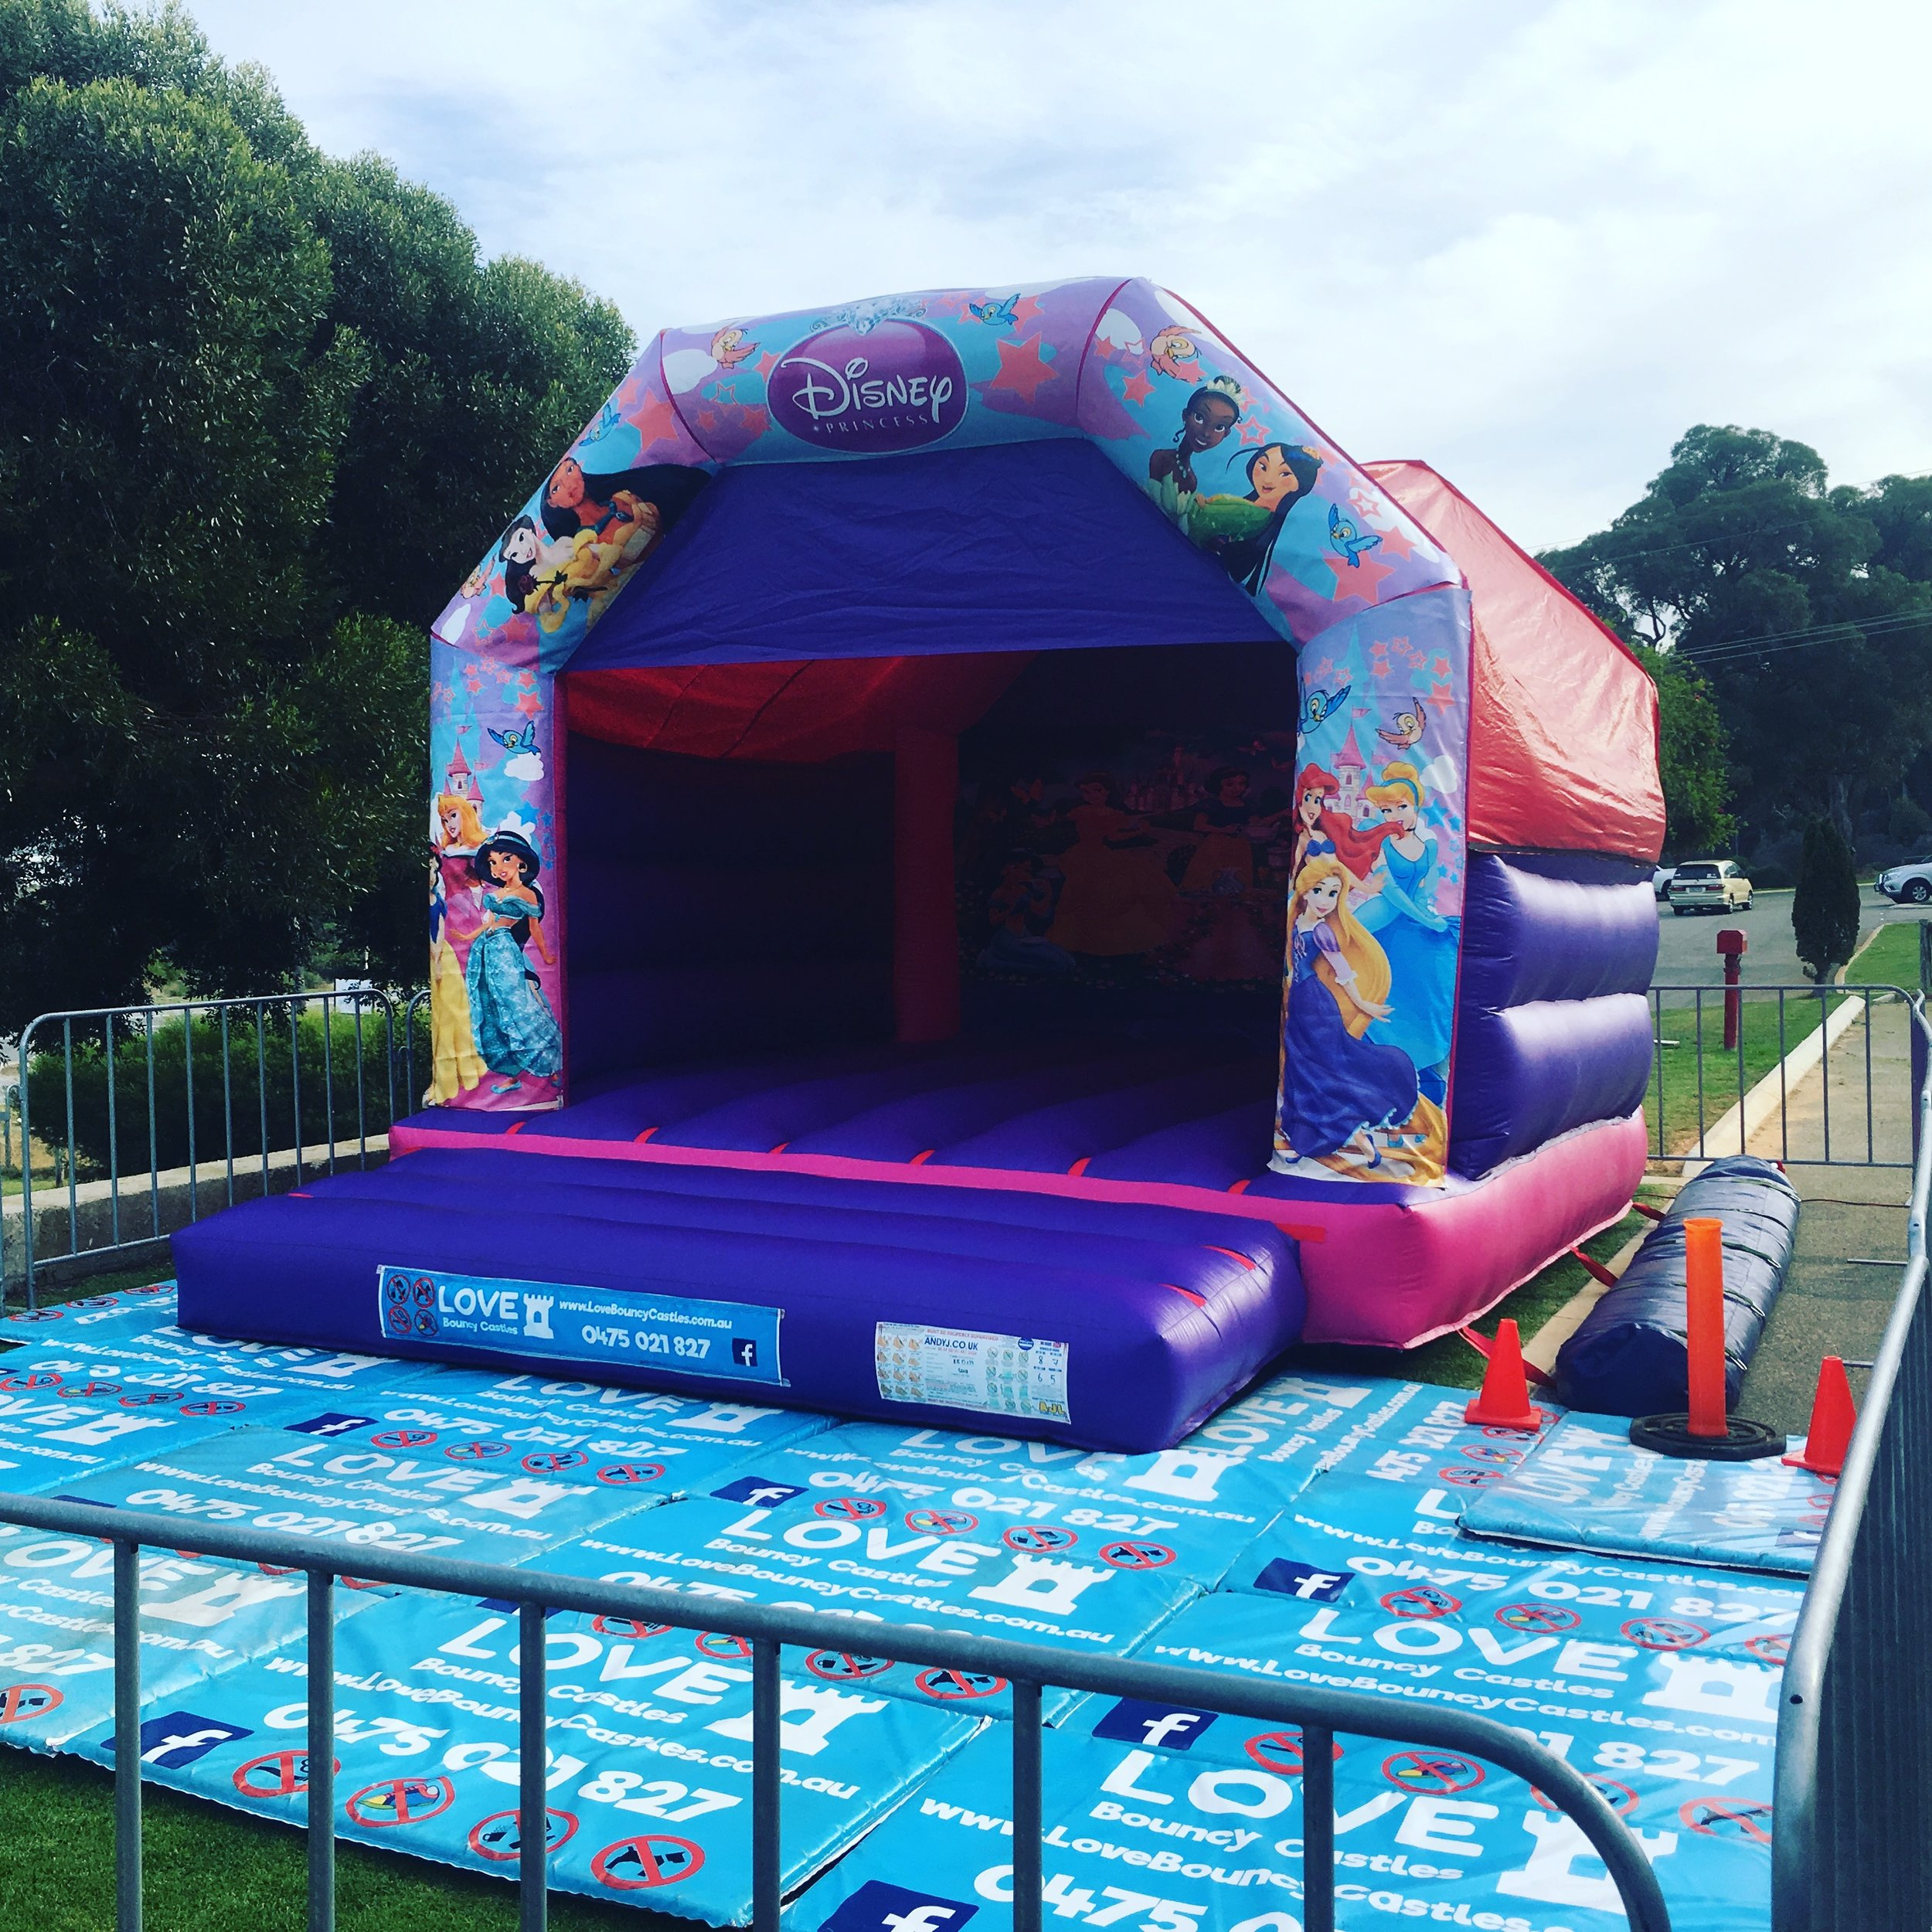 Copy of Princess Jumping Castle Hire in Perth, WA